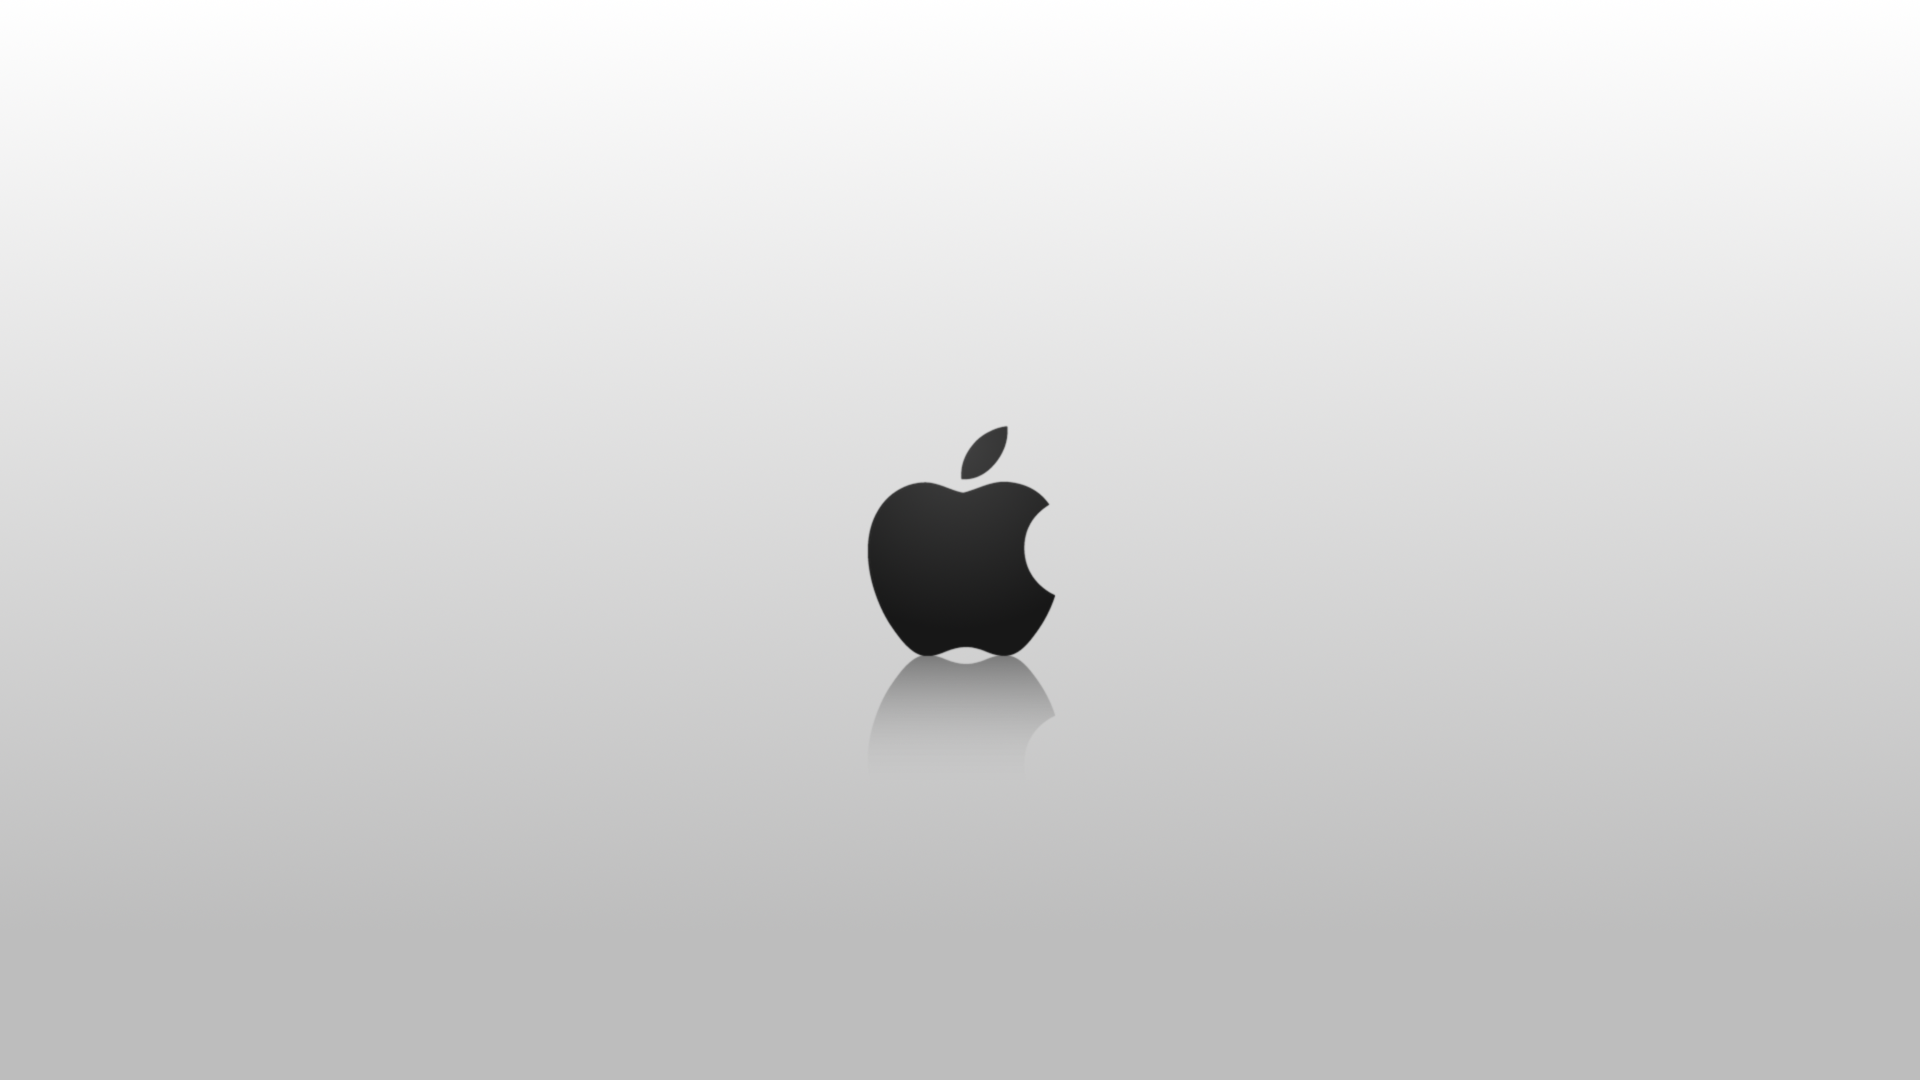 Apple · Apple · Apple · Awesome Apple Background ...